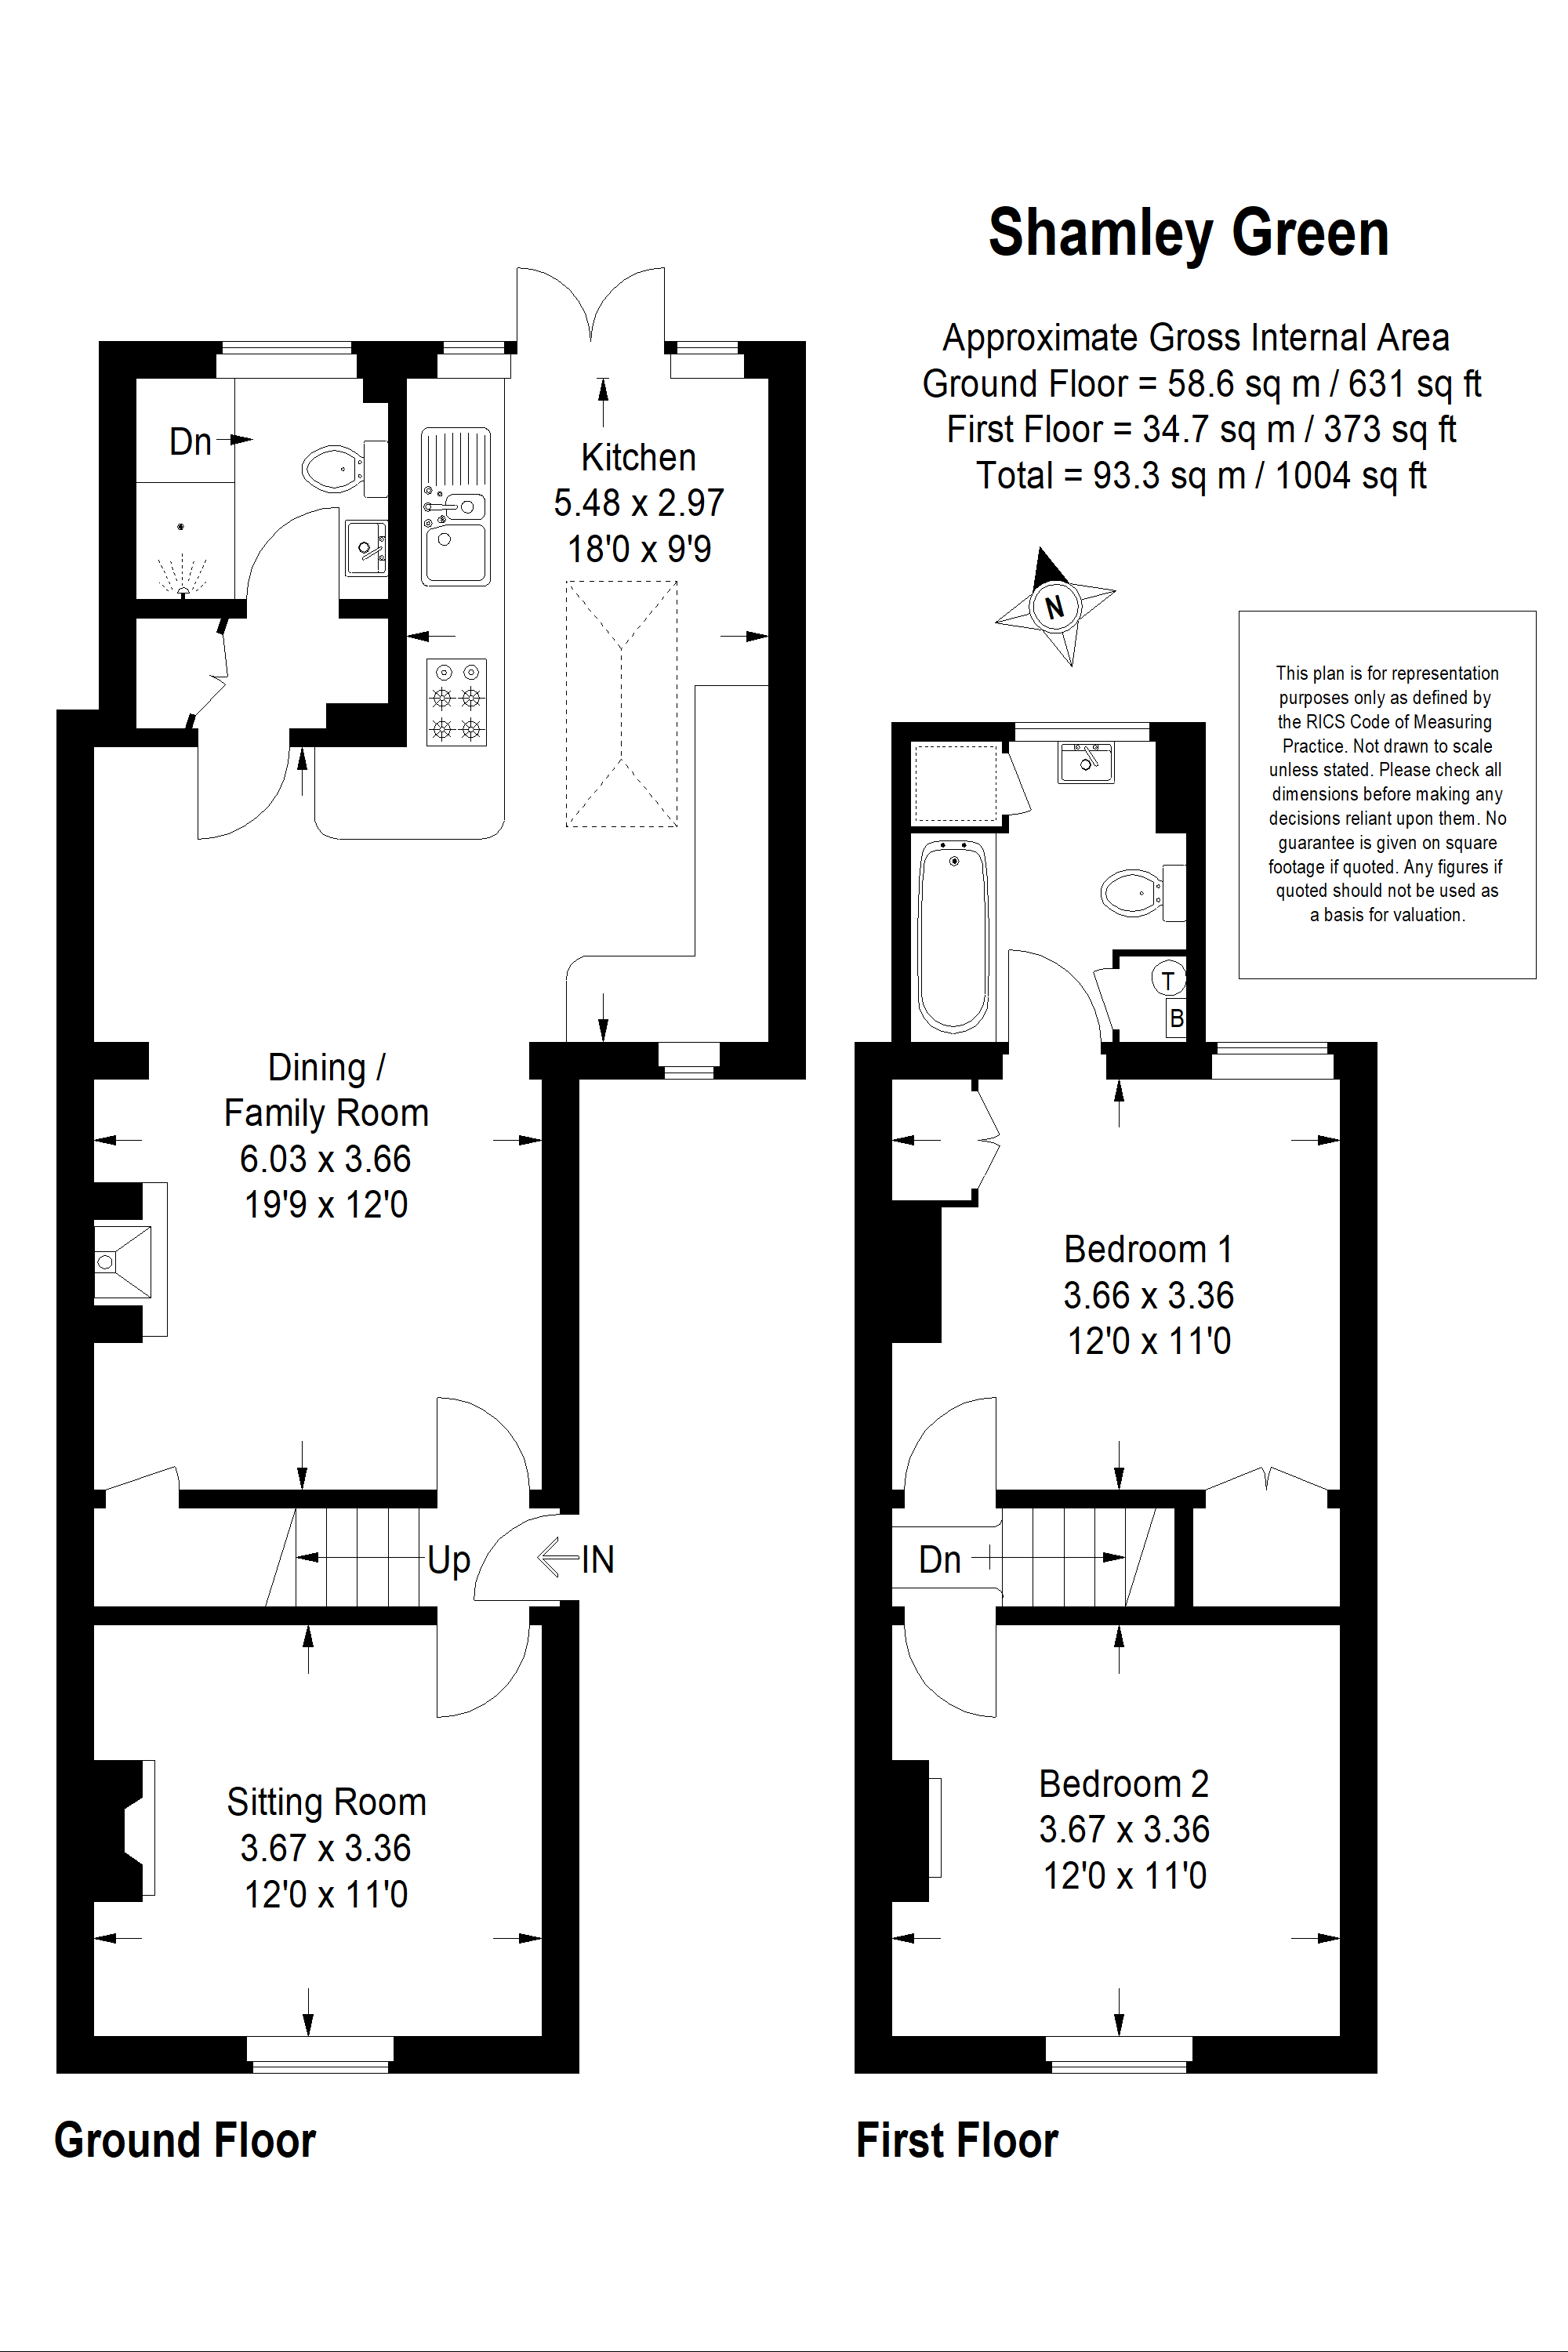 FloorPlan 3 Southview Cottages Sweetwater lane Shamley Green